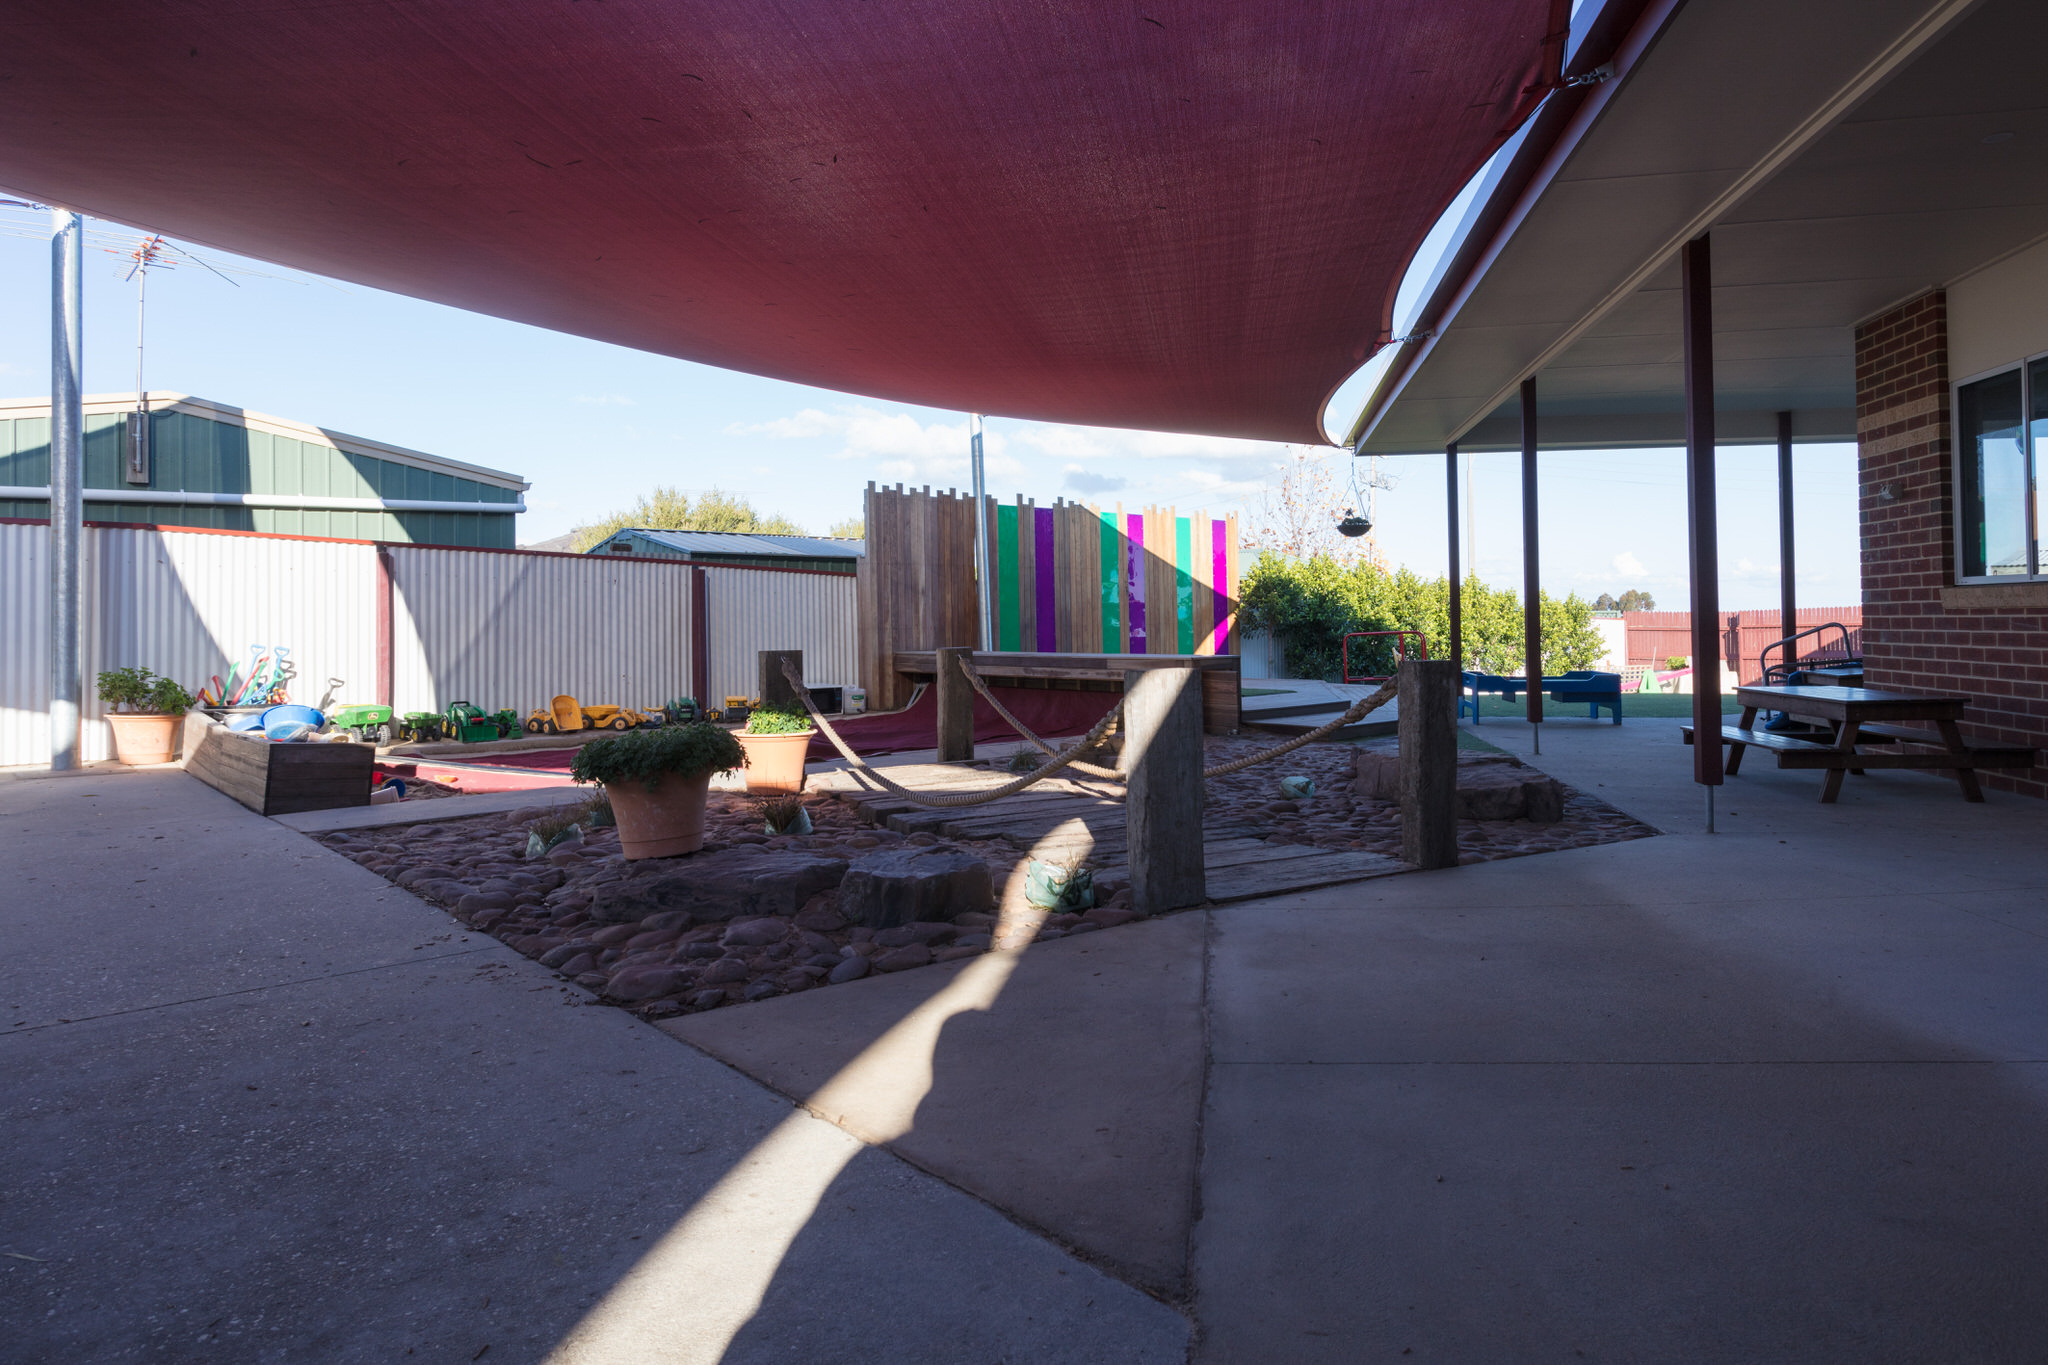 Before and After School Play Area